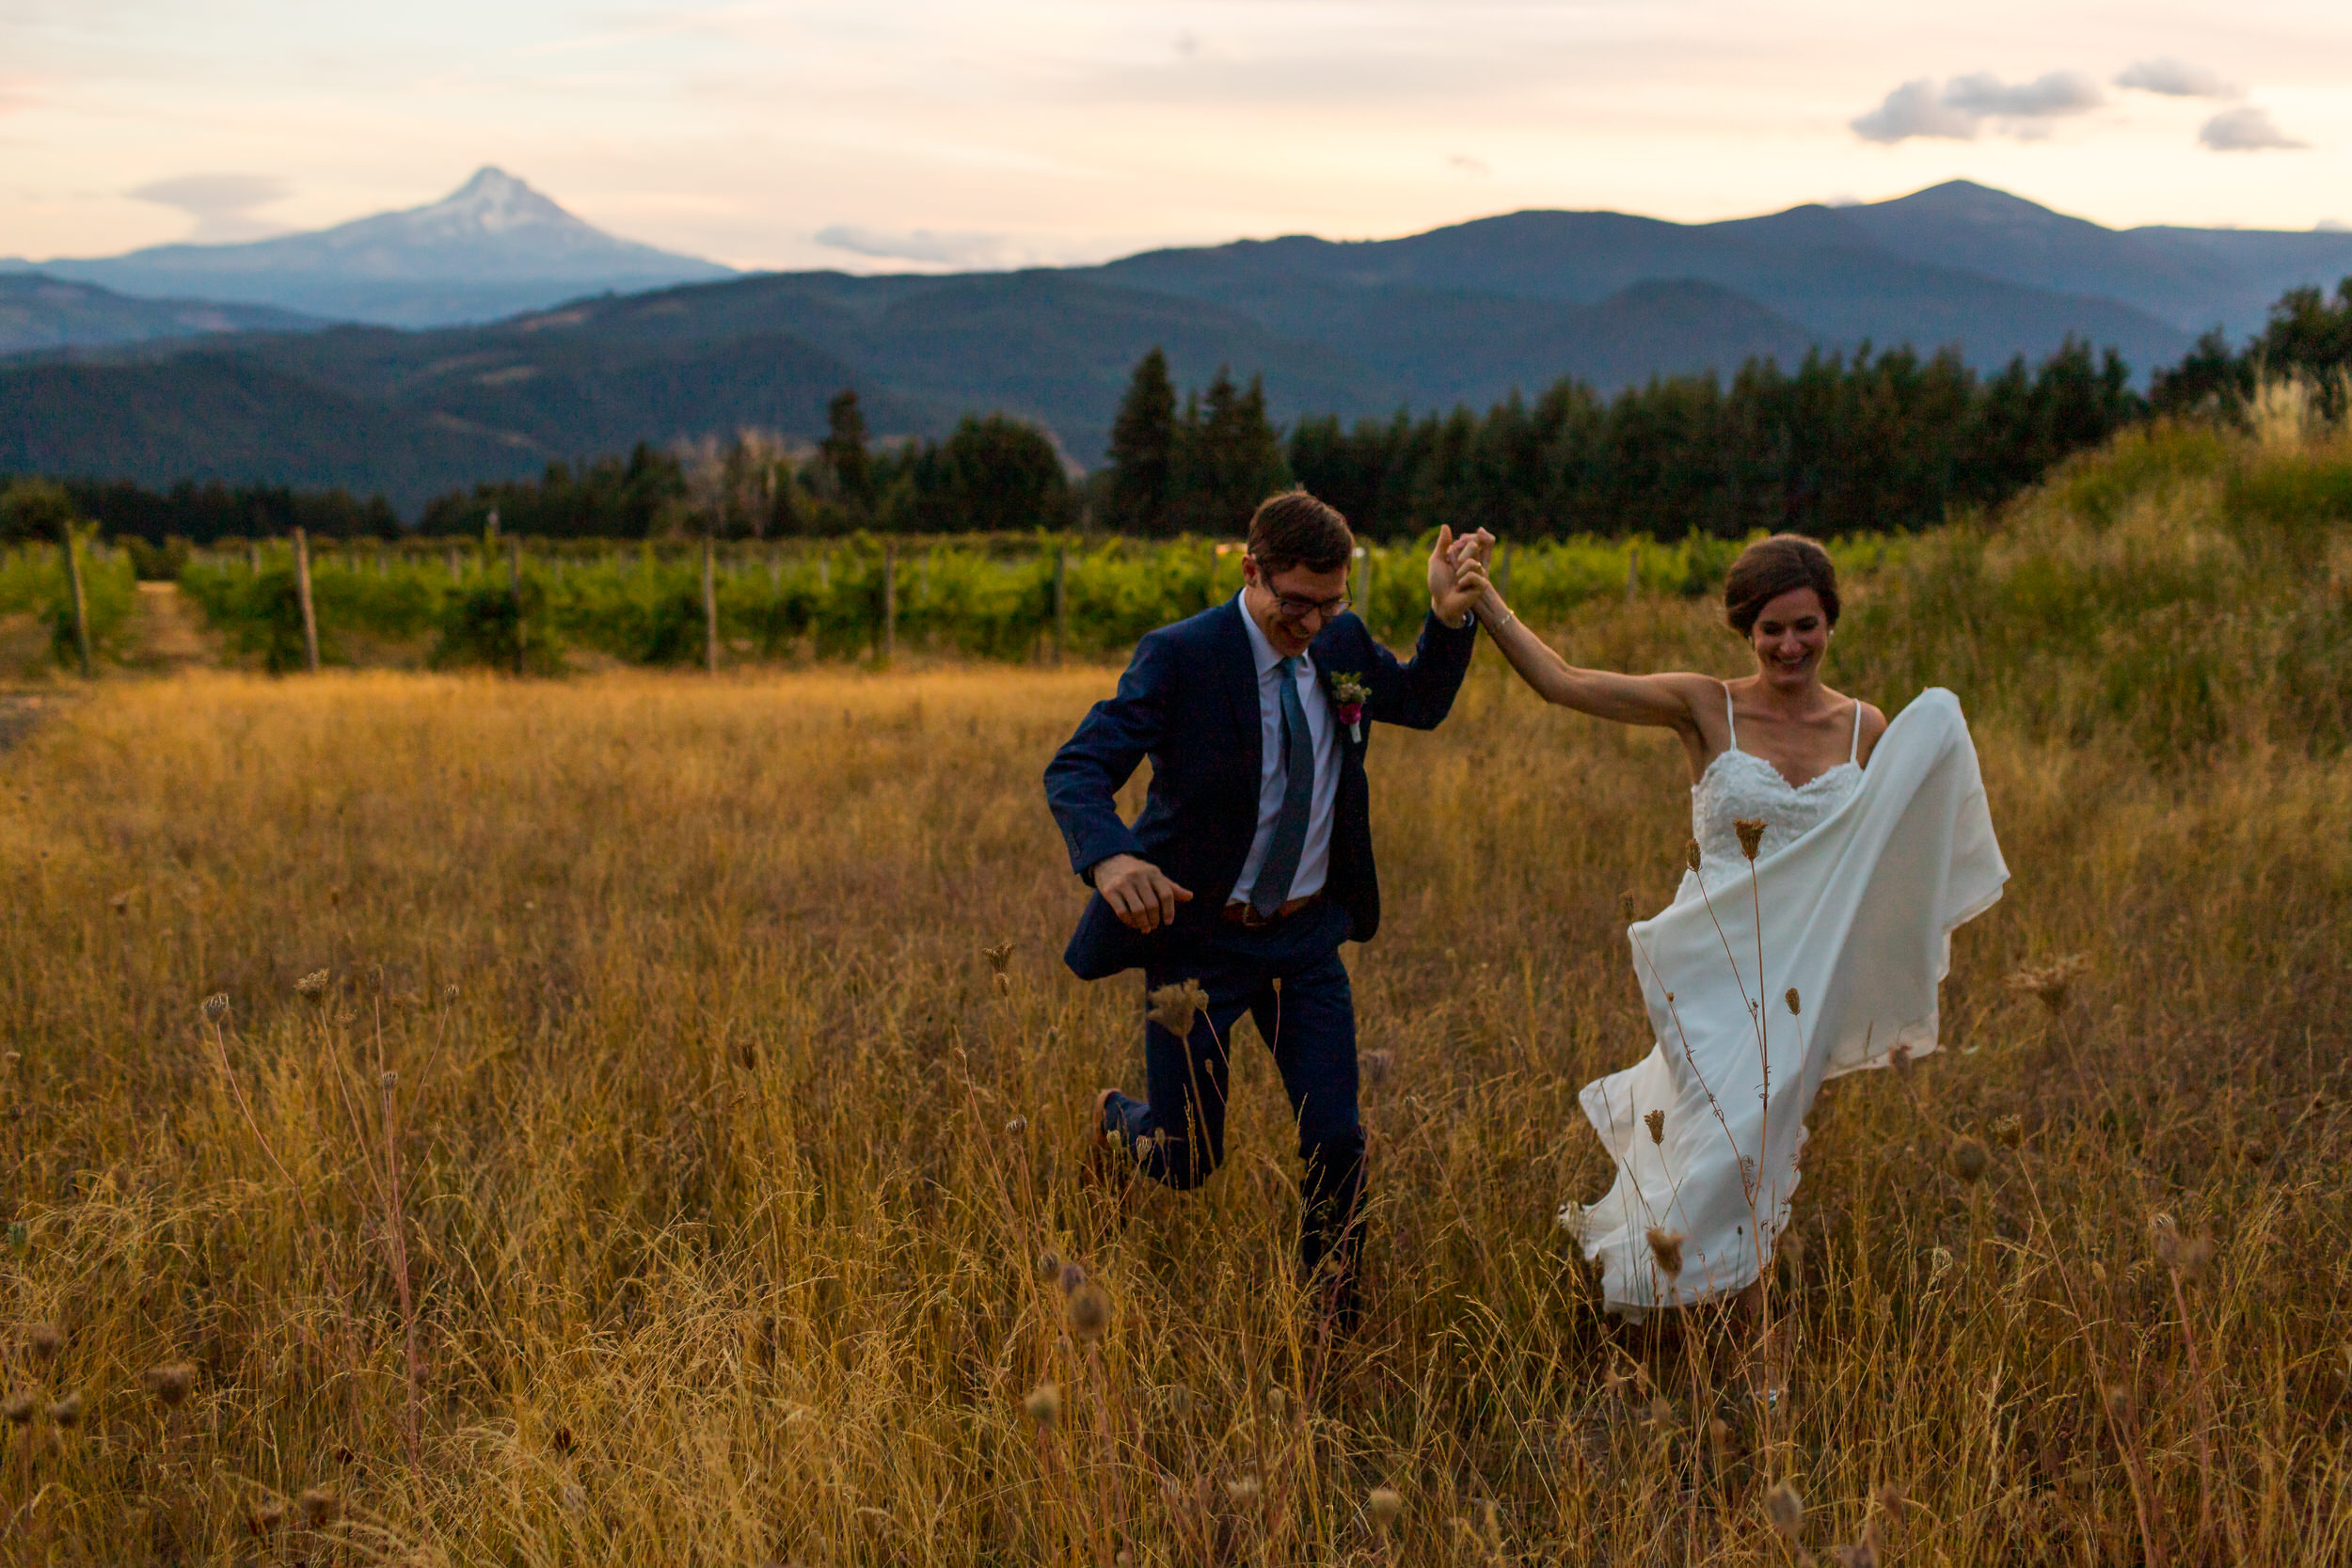 Gorge_Crest_Vineyards_Wedding_Stark_Photography_052